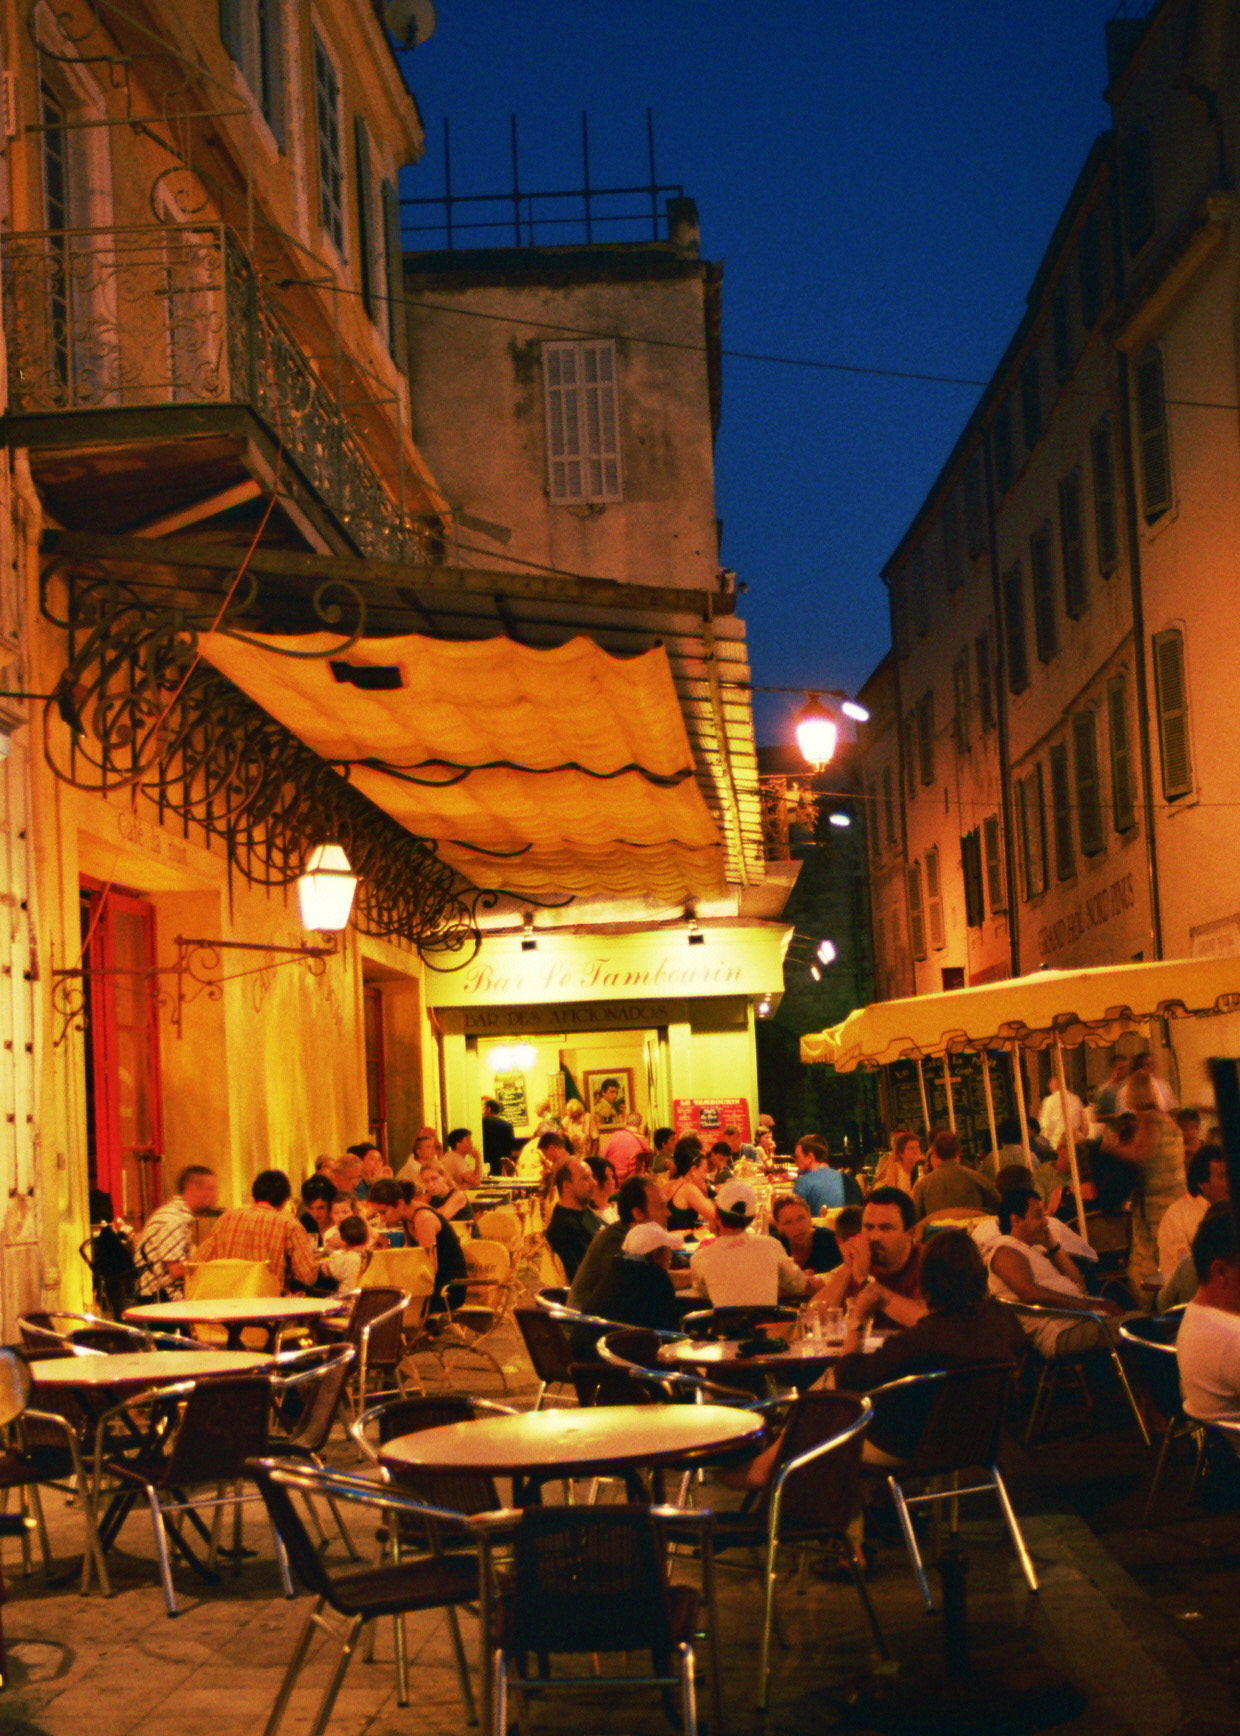 the cafe terrace at night essay The cafe terrace at night - essay by j_ilagan - anti essays the cafe terrace at night essay below is an essay on the cafe terrace at night from anti essays the cafe terrace at night anti essays.